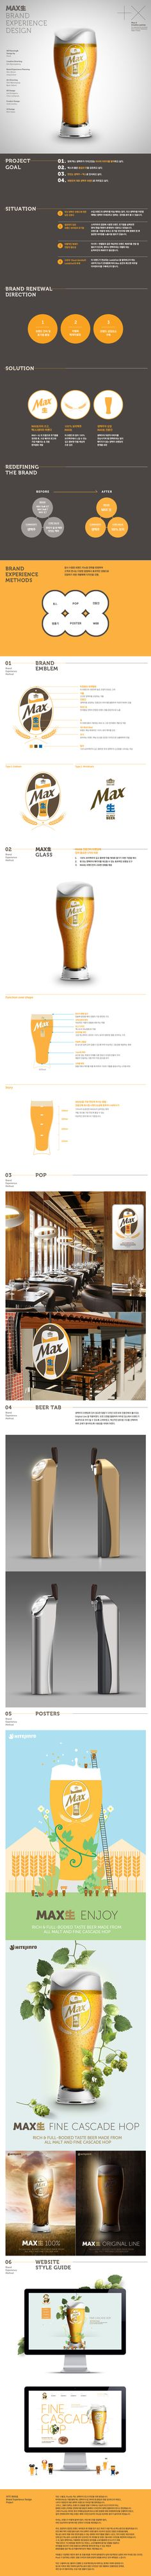 HITE MAX生 Brand Experience Design by Plus X , via Behance